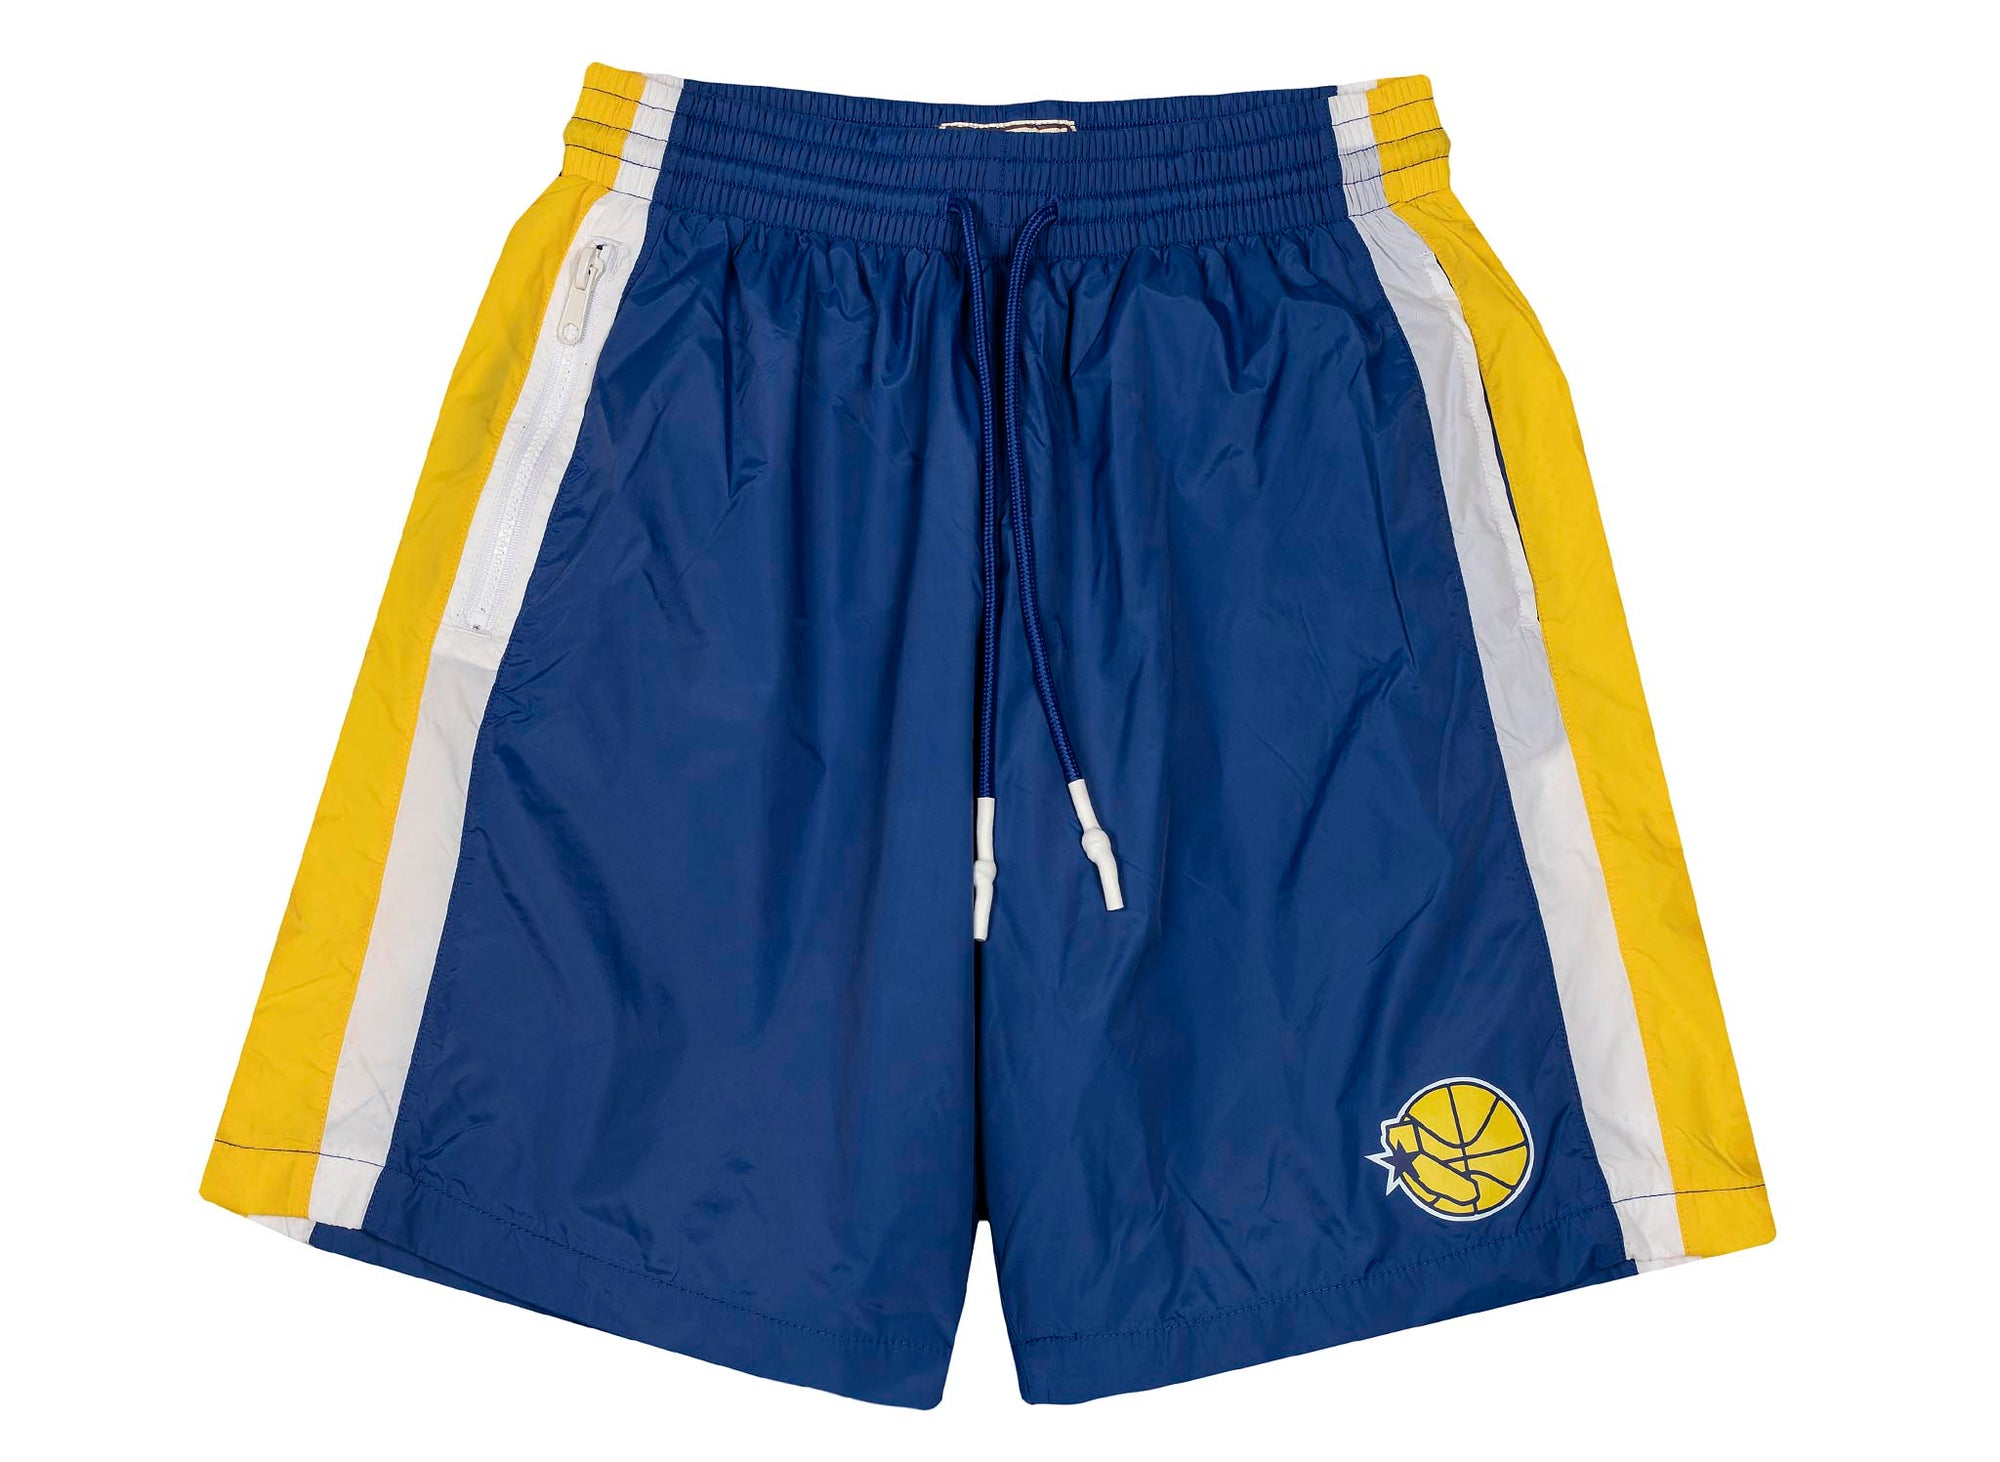 Mitchell & Ness Packable Nylon Shorts 'Golden State Warriors'